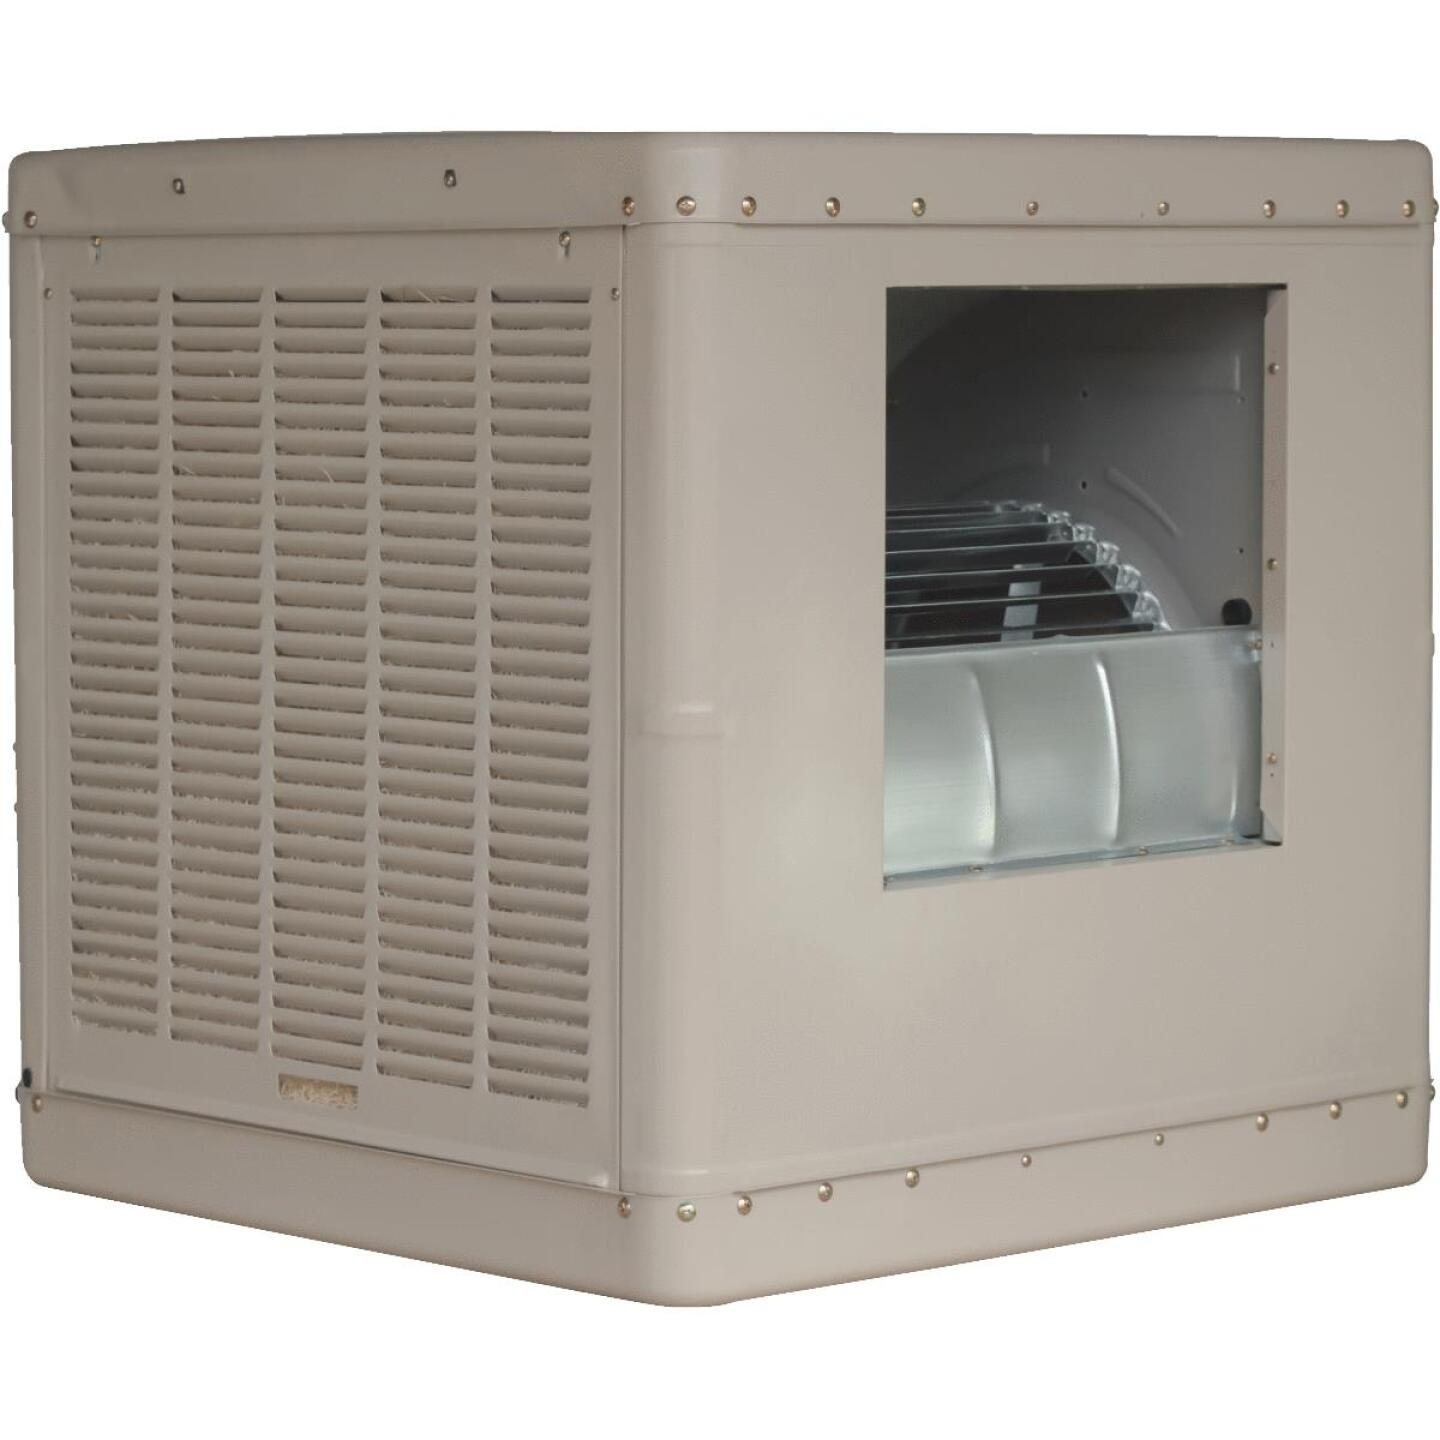 Essick 2230 to 4600 CFM Side Discharge Whole House Aspen Media Residential Evaporative Cooler, 800-1700 Sq. Ft. Image 1